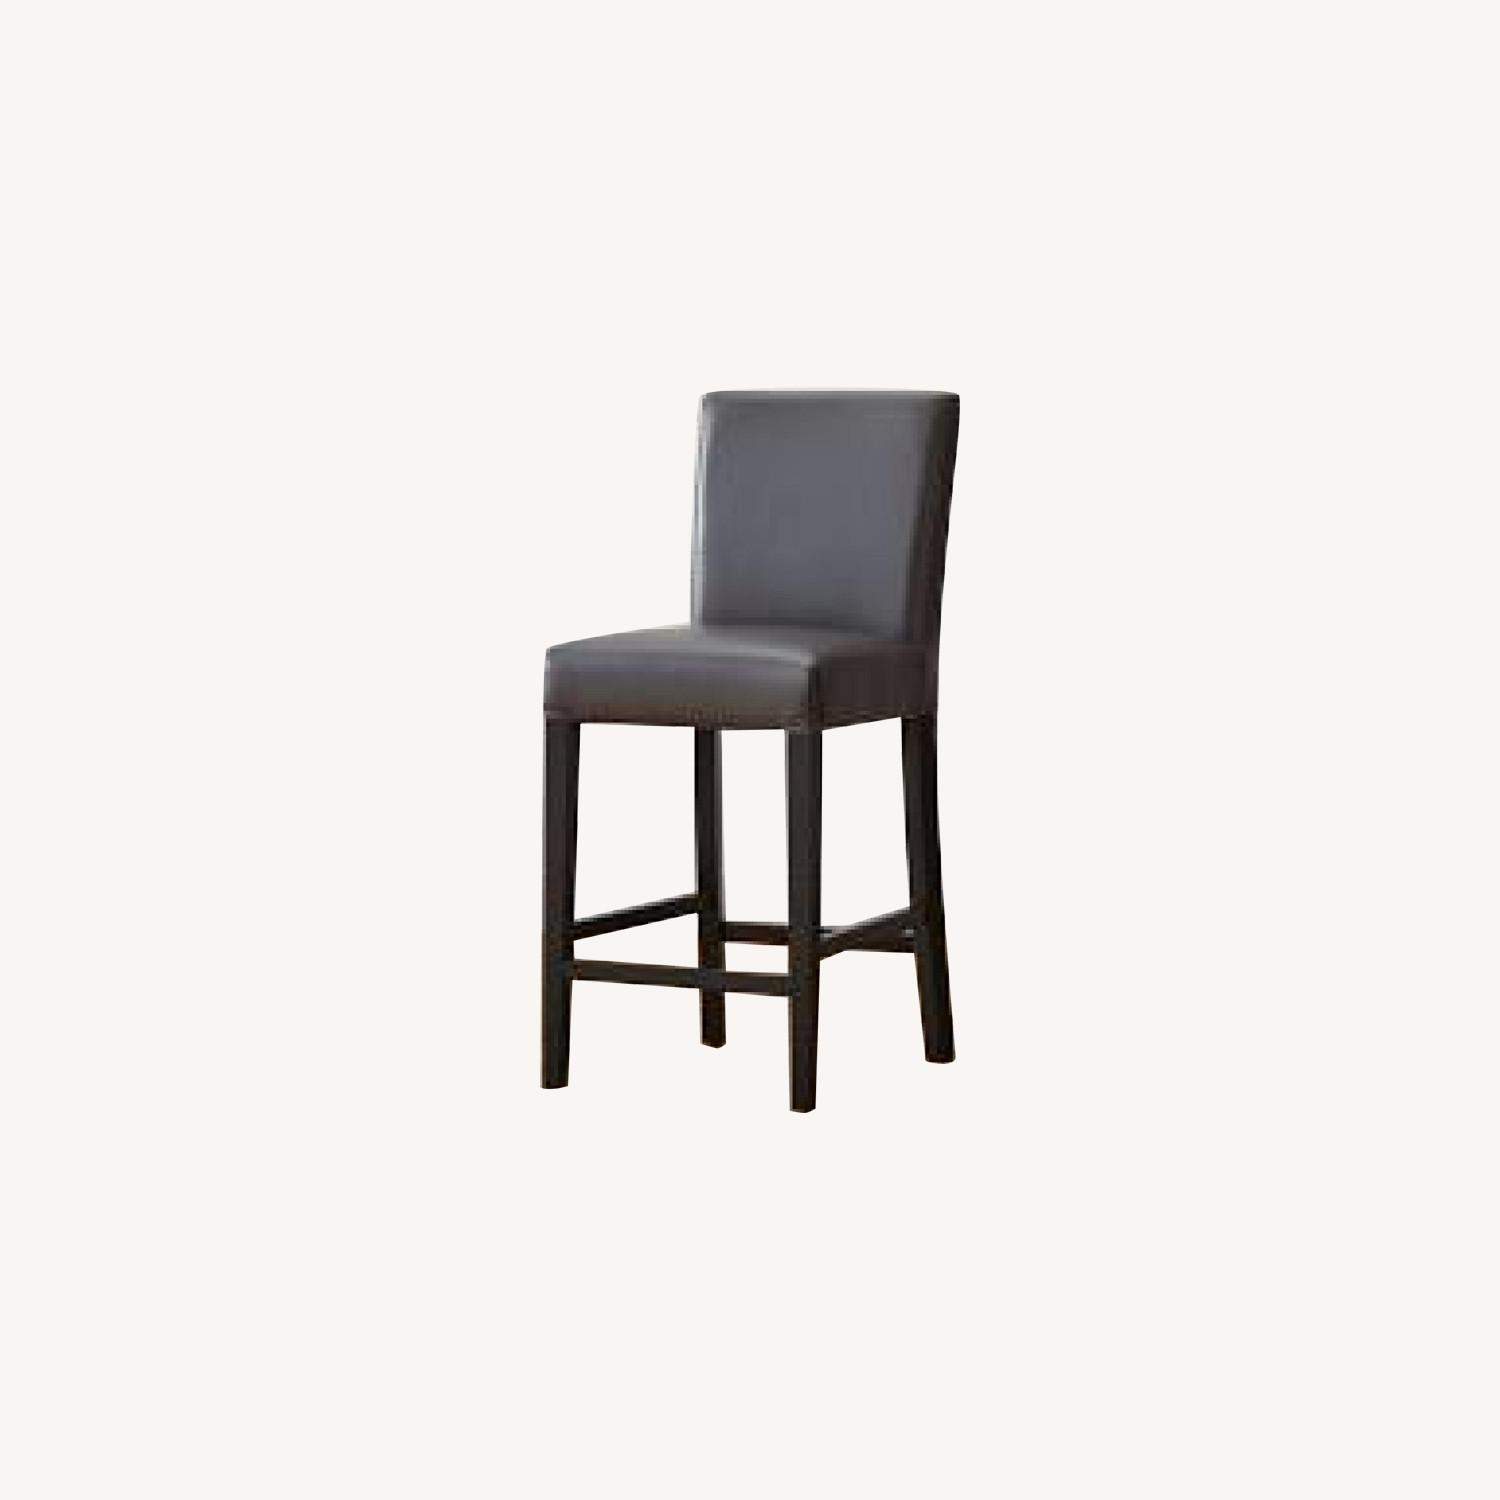 Crate & Barrel Grey/Gray Counter Chair/Stool - image-0